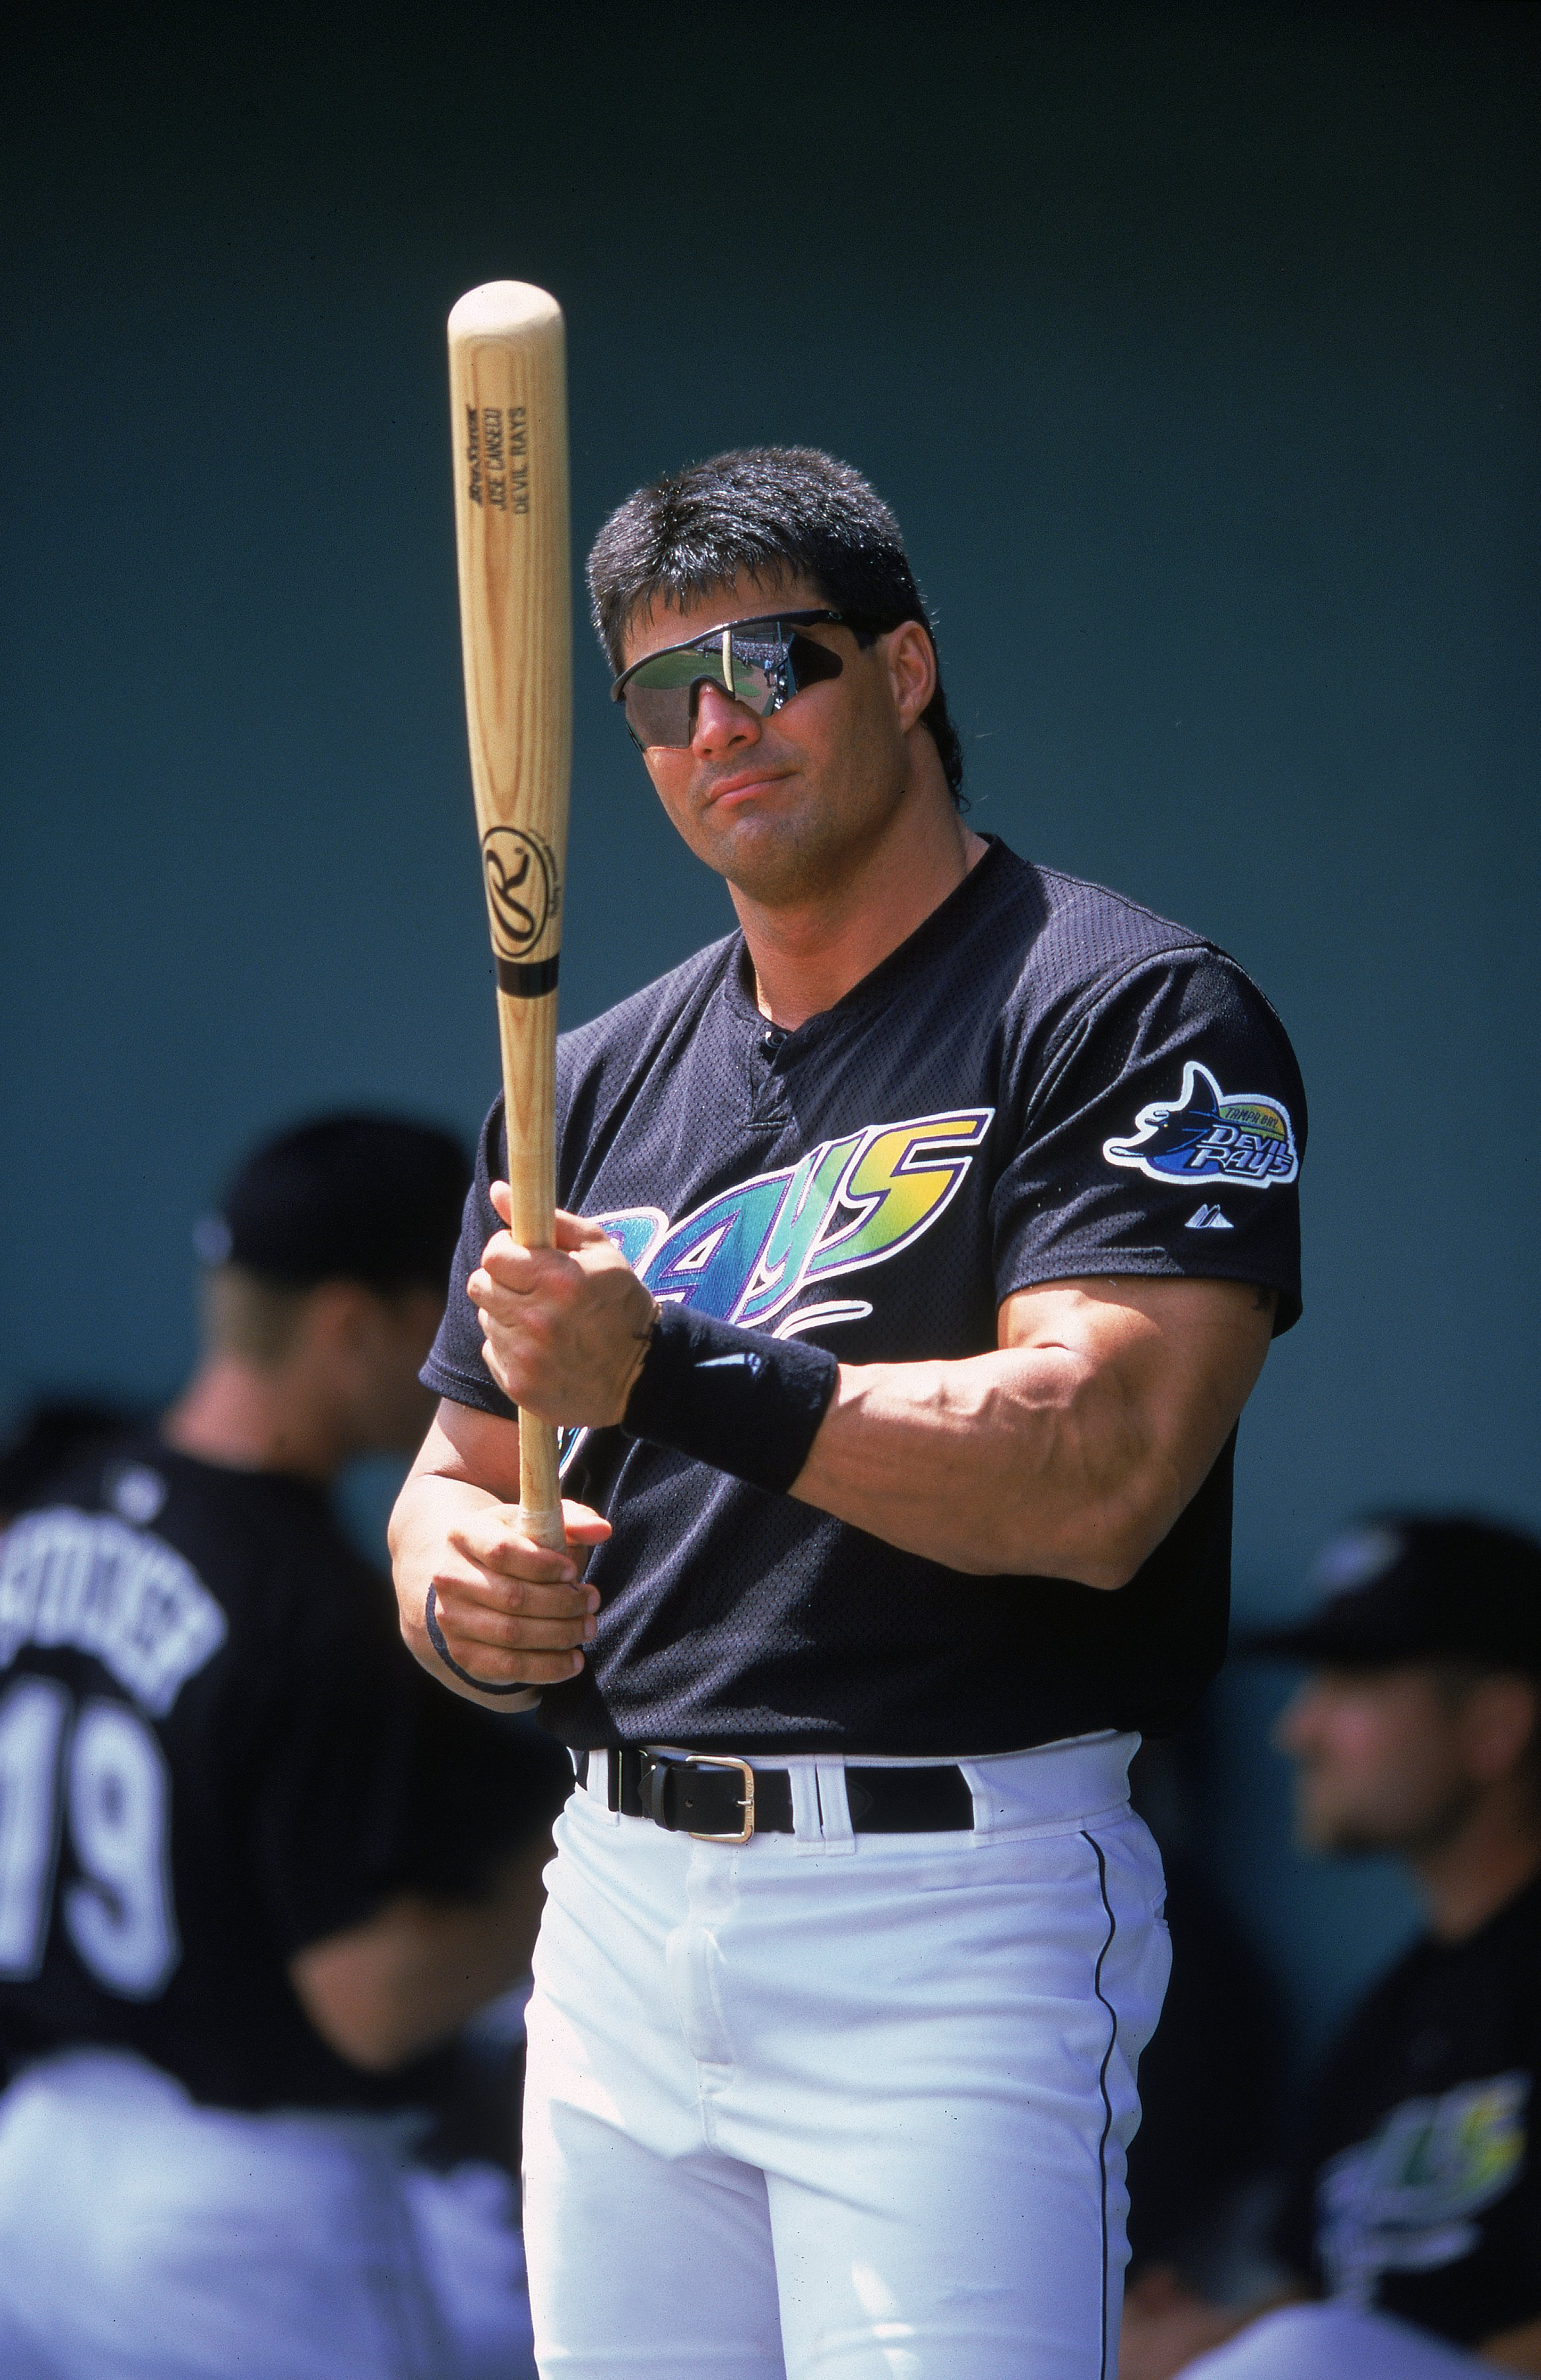 Jose Canseco #33